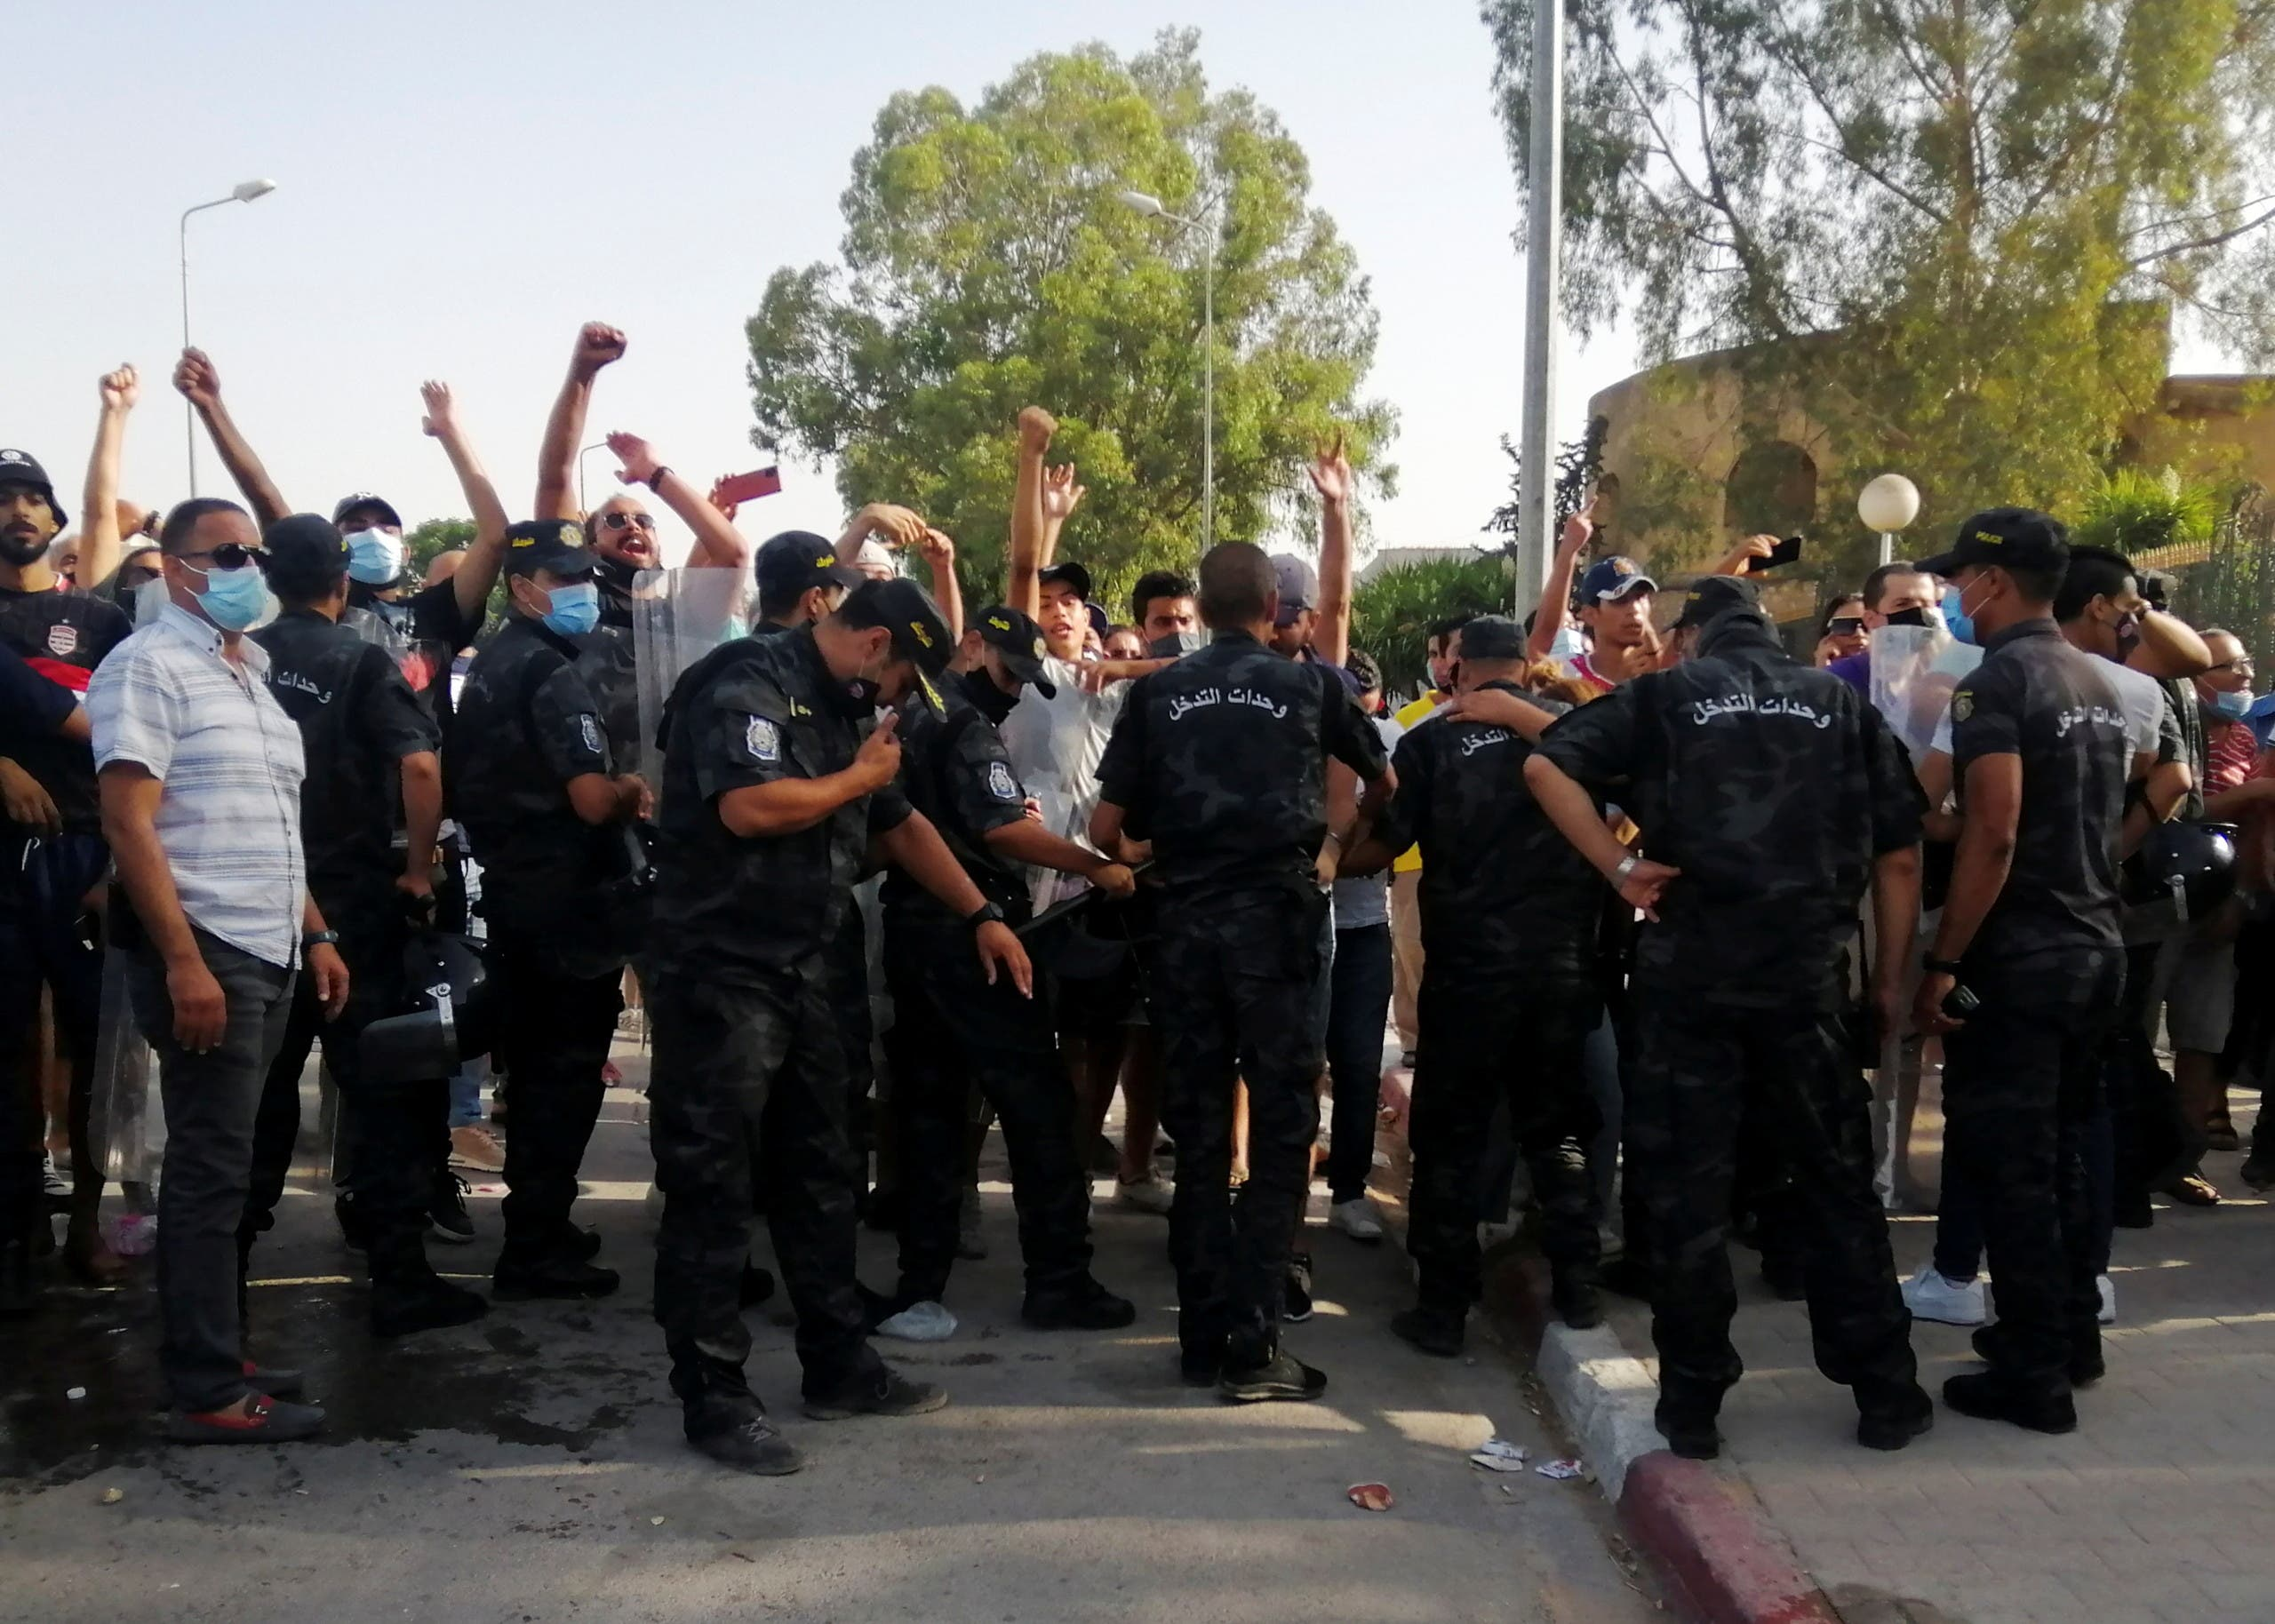 In front of the Tunisian Parliament